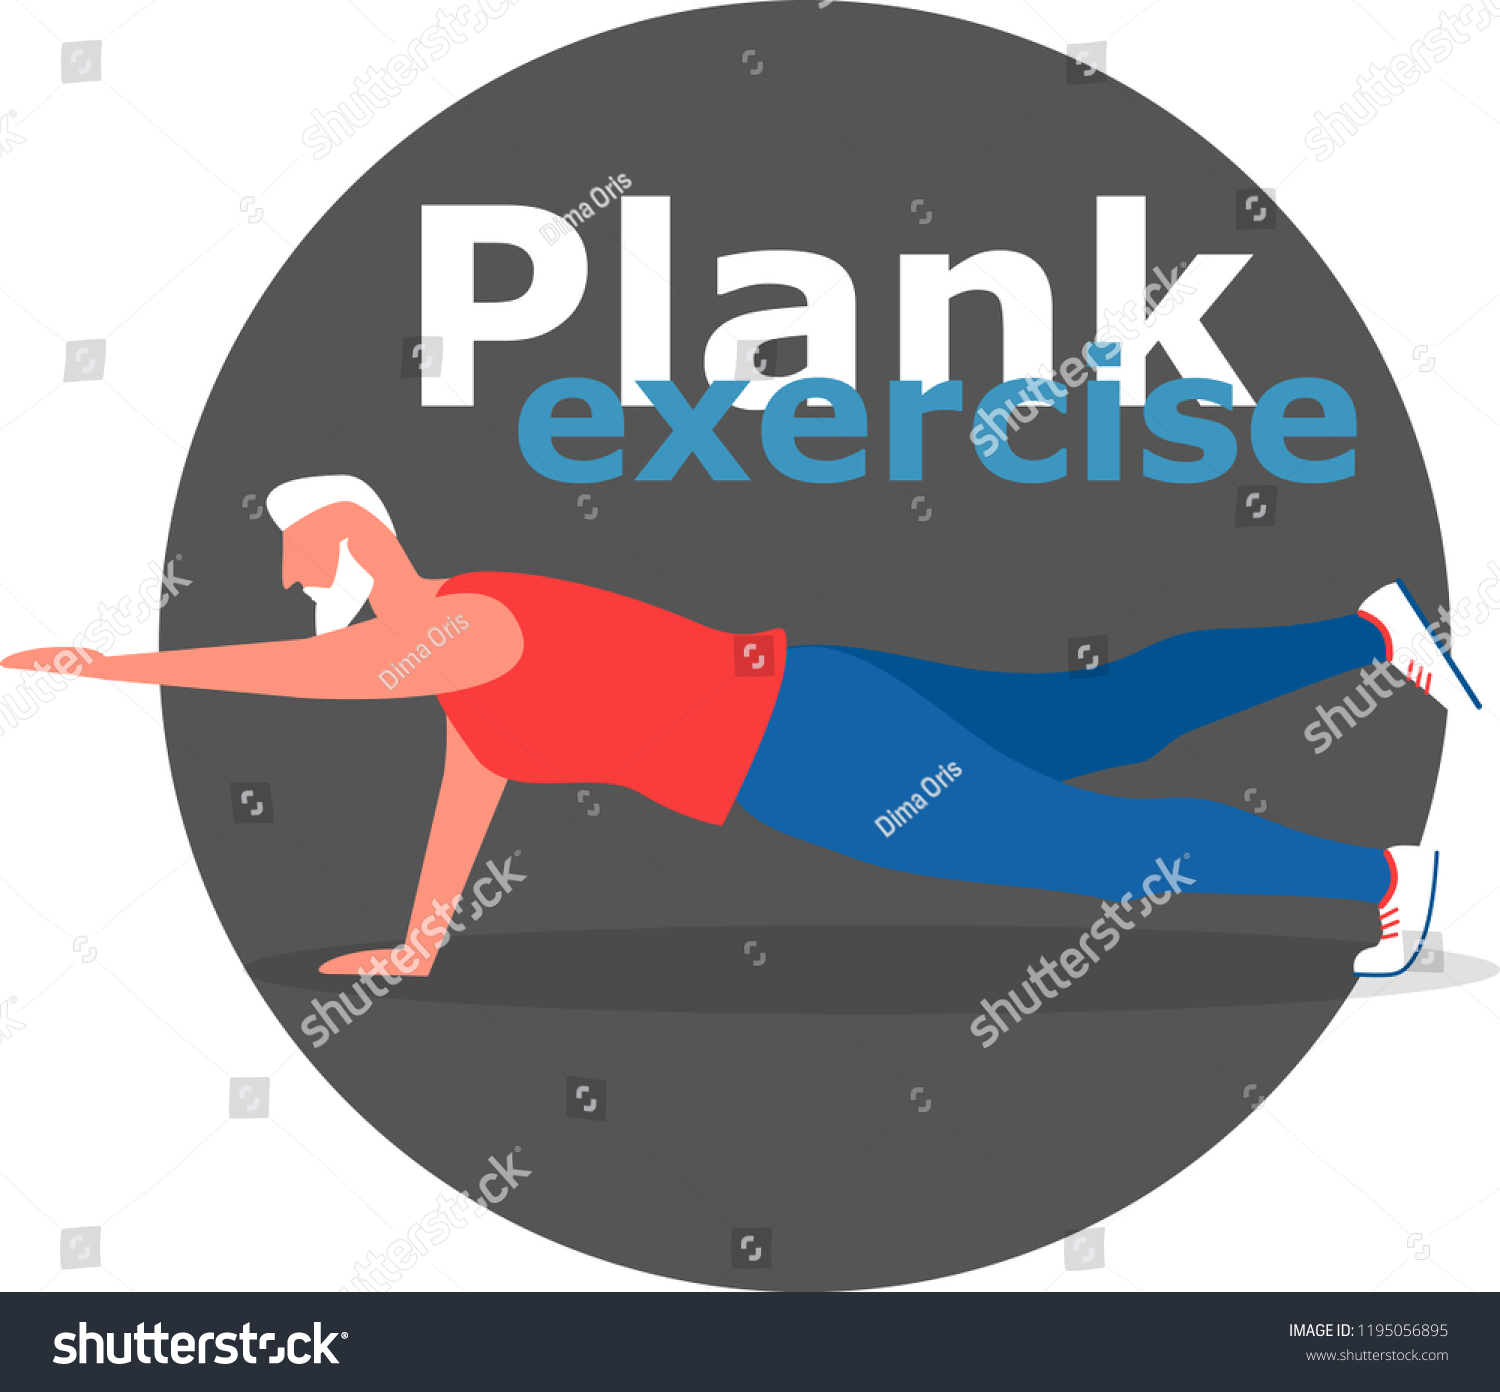 Fitness Man Doing Planking Exercise Planksgiving People Sports Recreation Stock Image